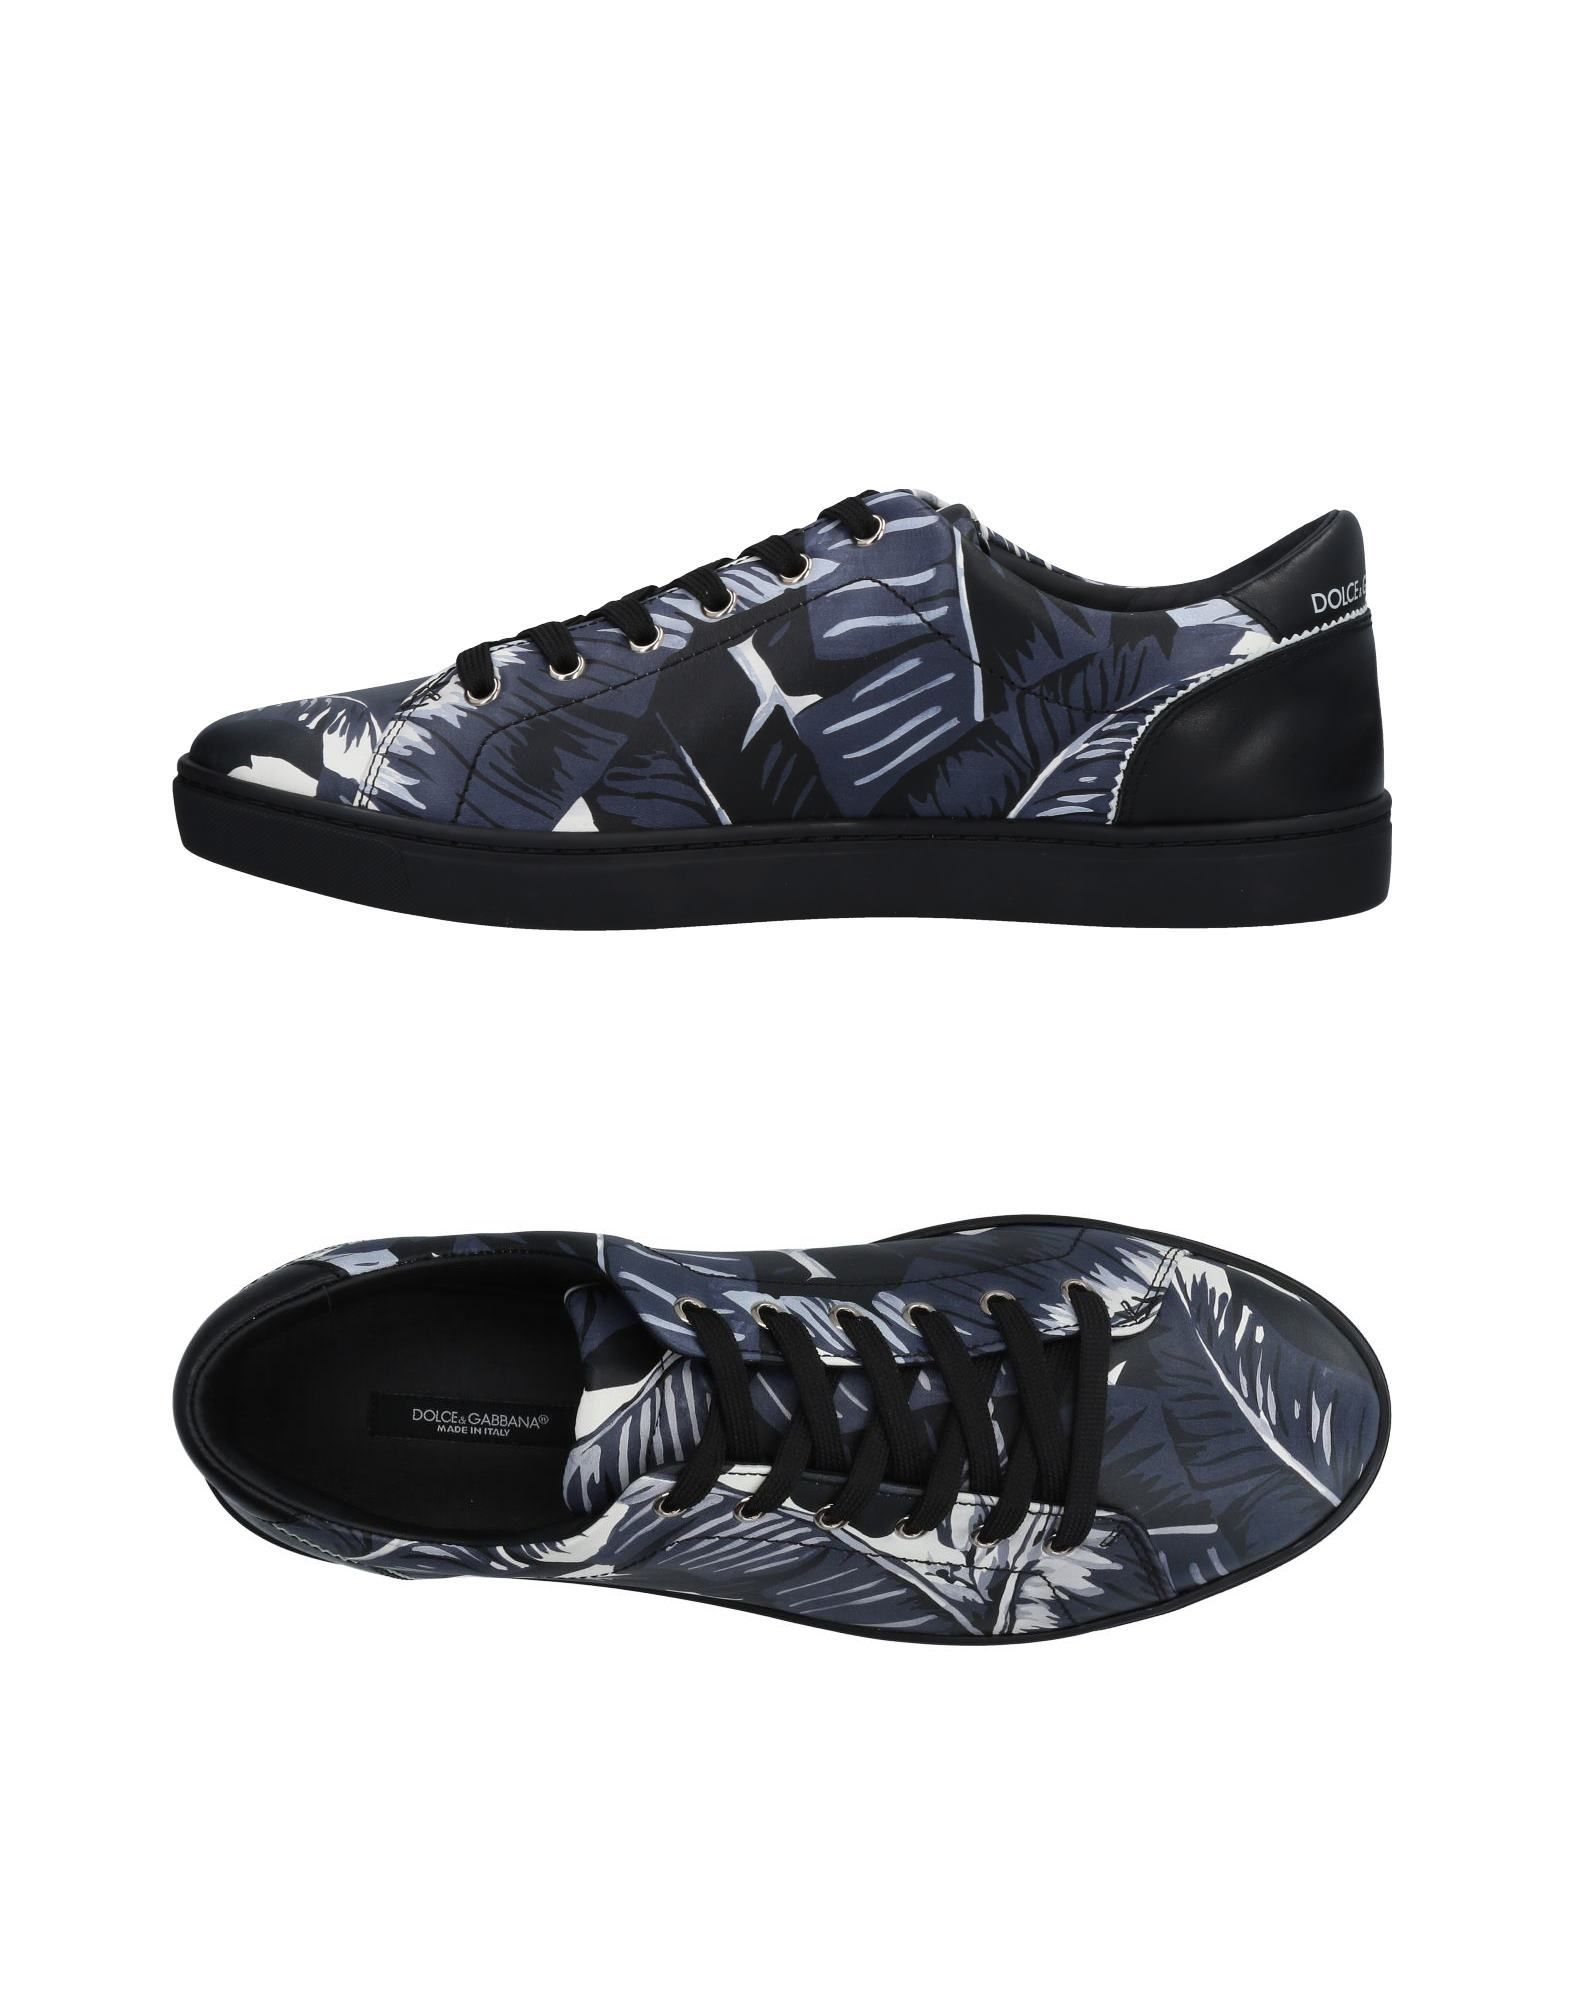 Dolce & Gabbana Sneakers - Men Dolce & Gabbana Sneakers - online on  Canada - Sneakers 11470919PI 49b028